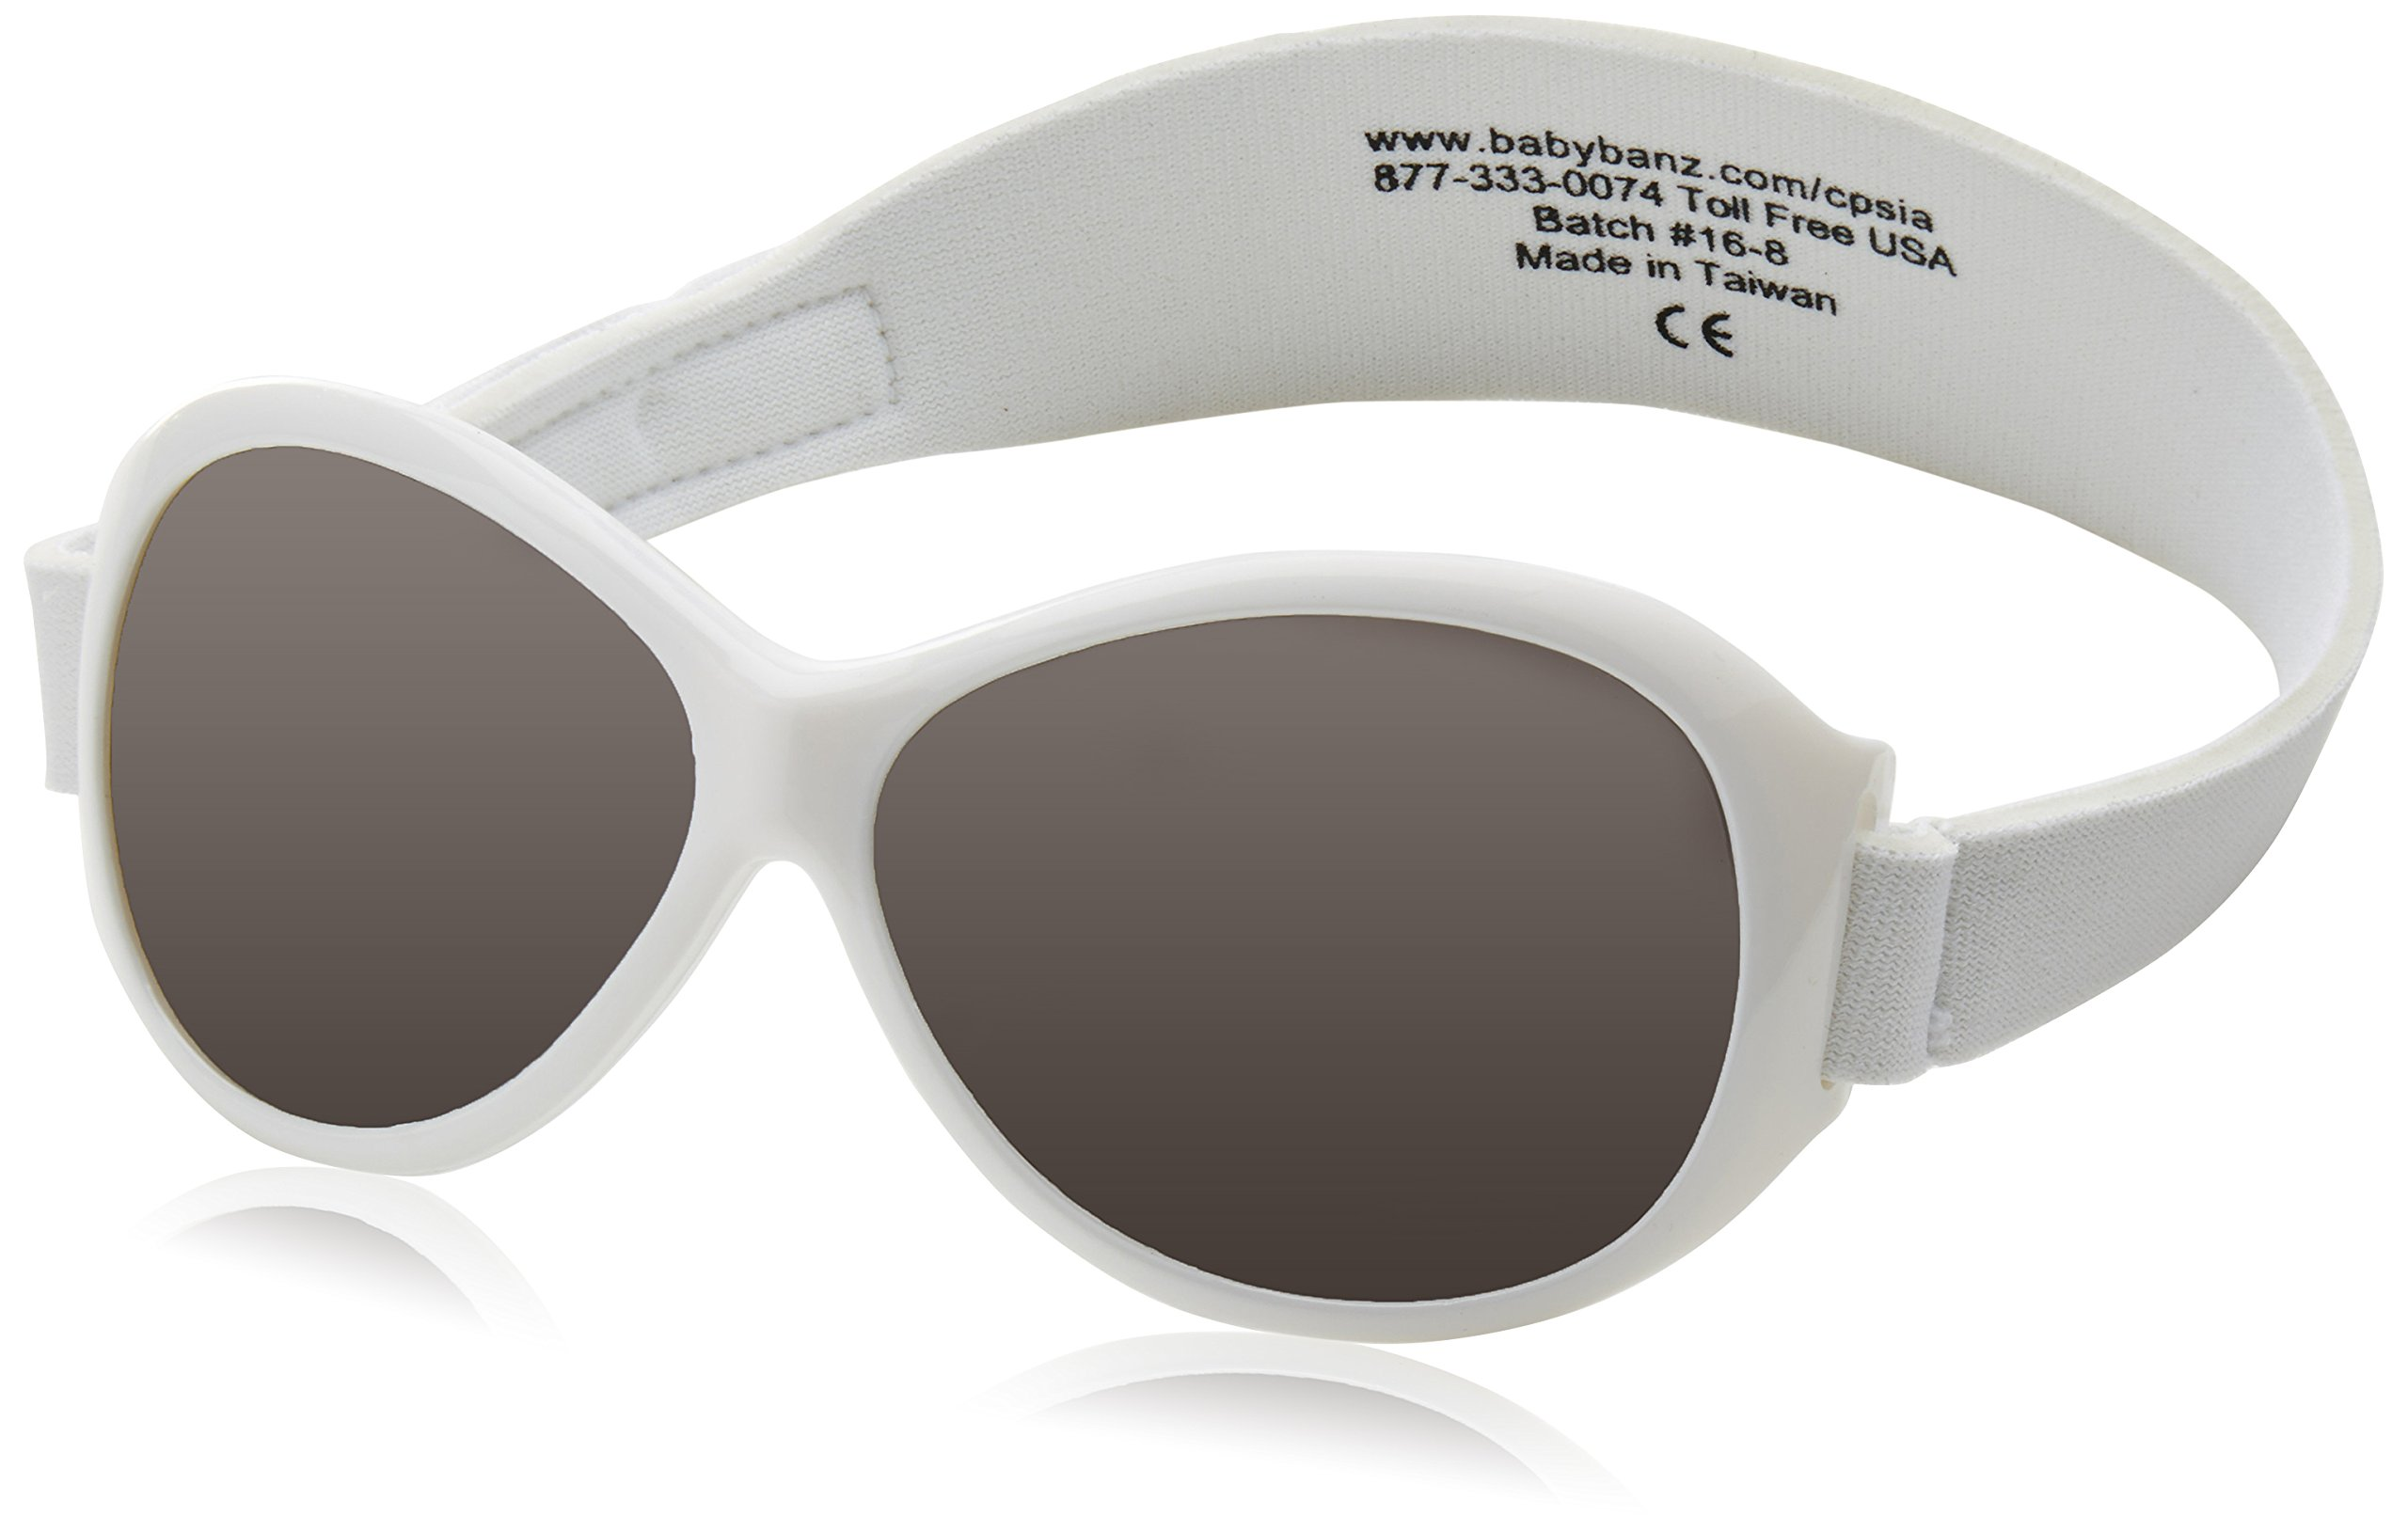 Baby Banz Retro Banz Oval Baby Sunglasses,Arctic White,One size